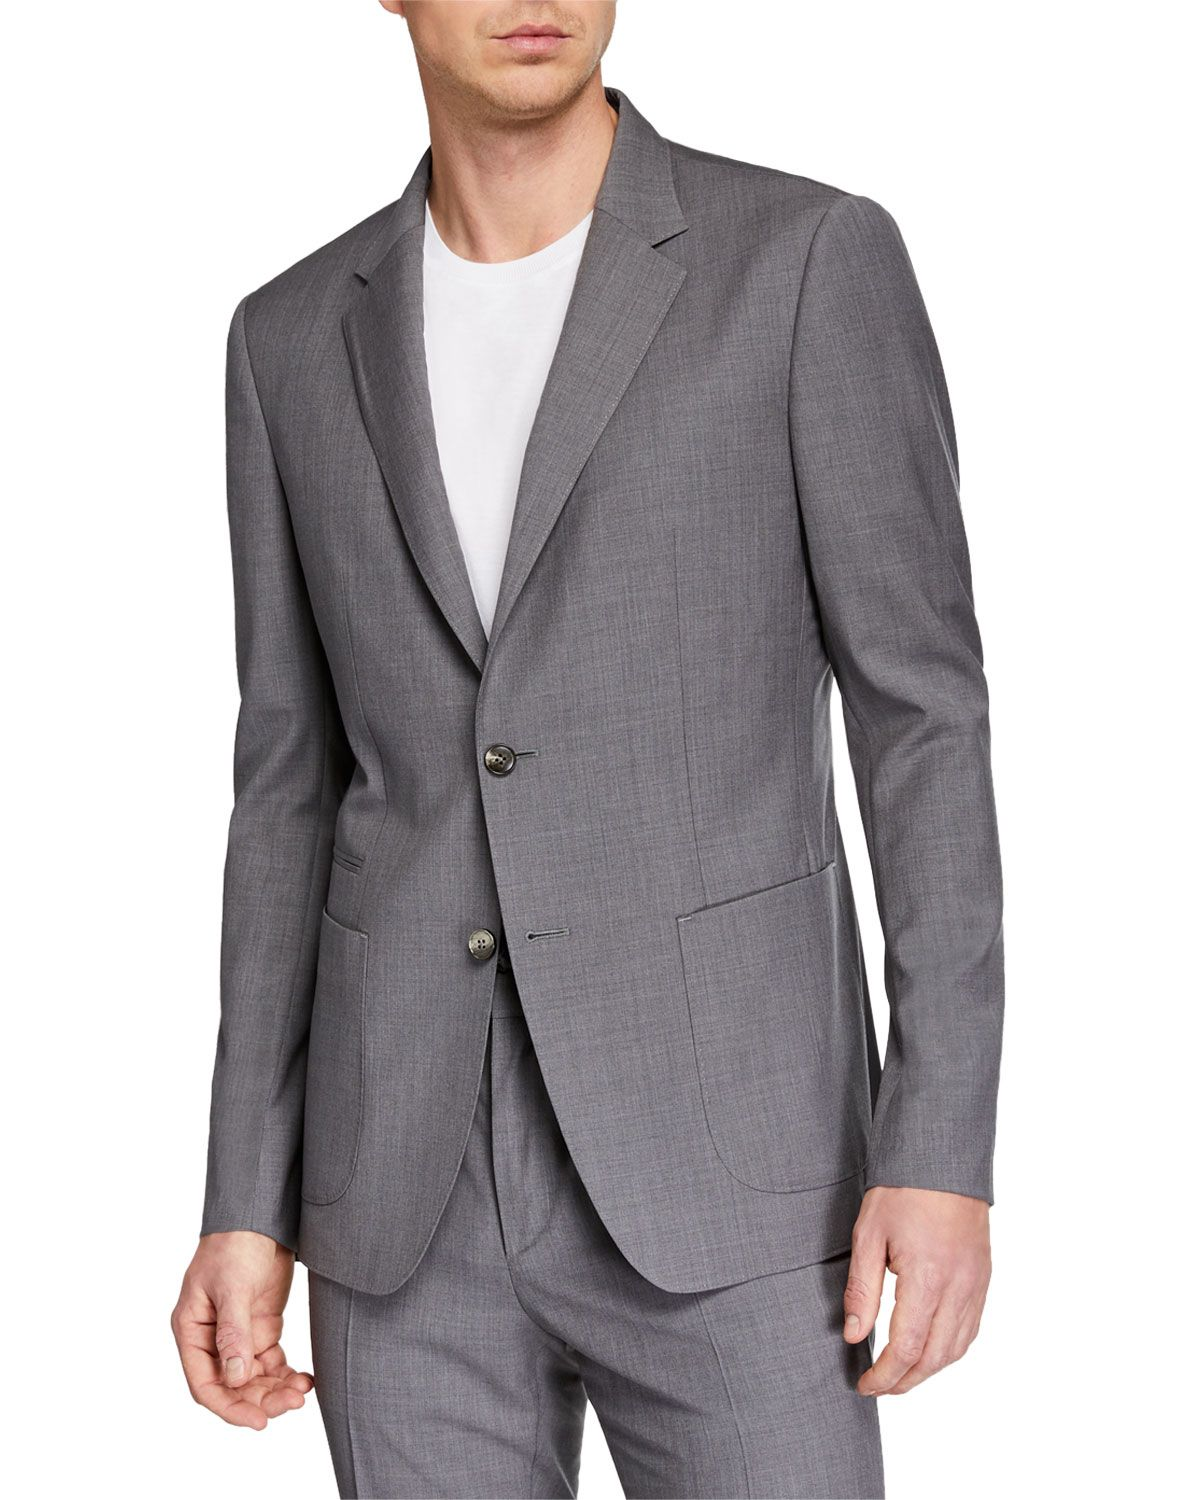 e55f99798aae20 Z ZEGNA MEN'S WASH-AND-GO TWO-PIECE SUIT. #zzegna #cloth | Z Zegna ...